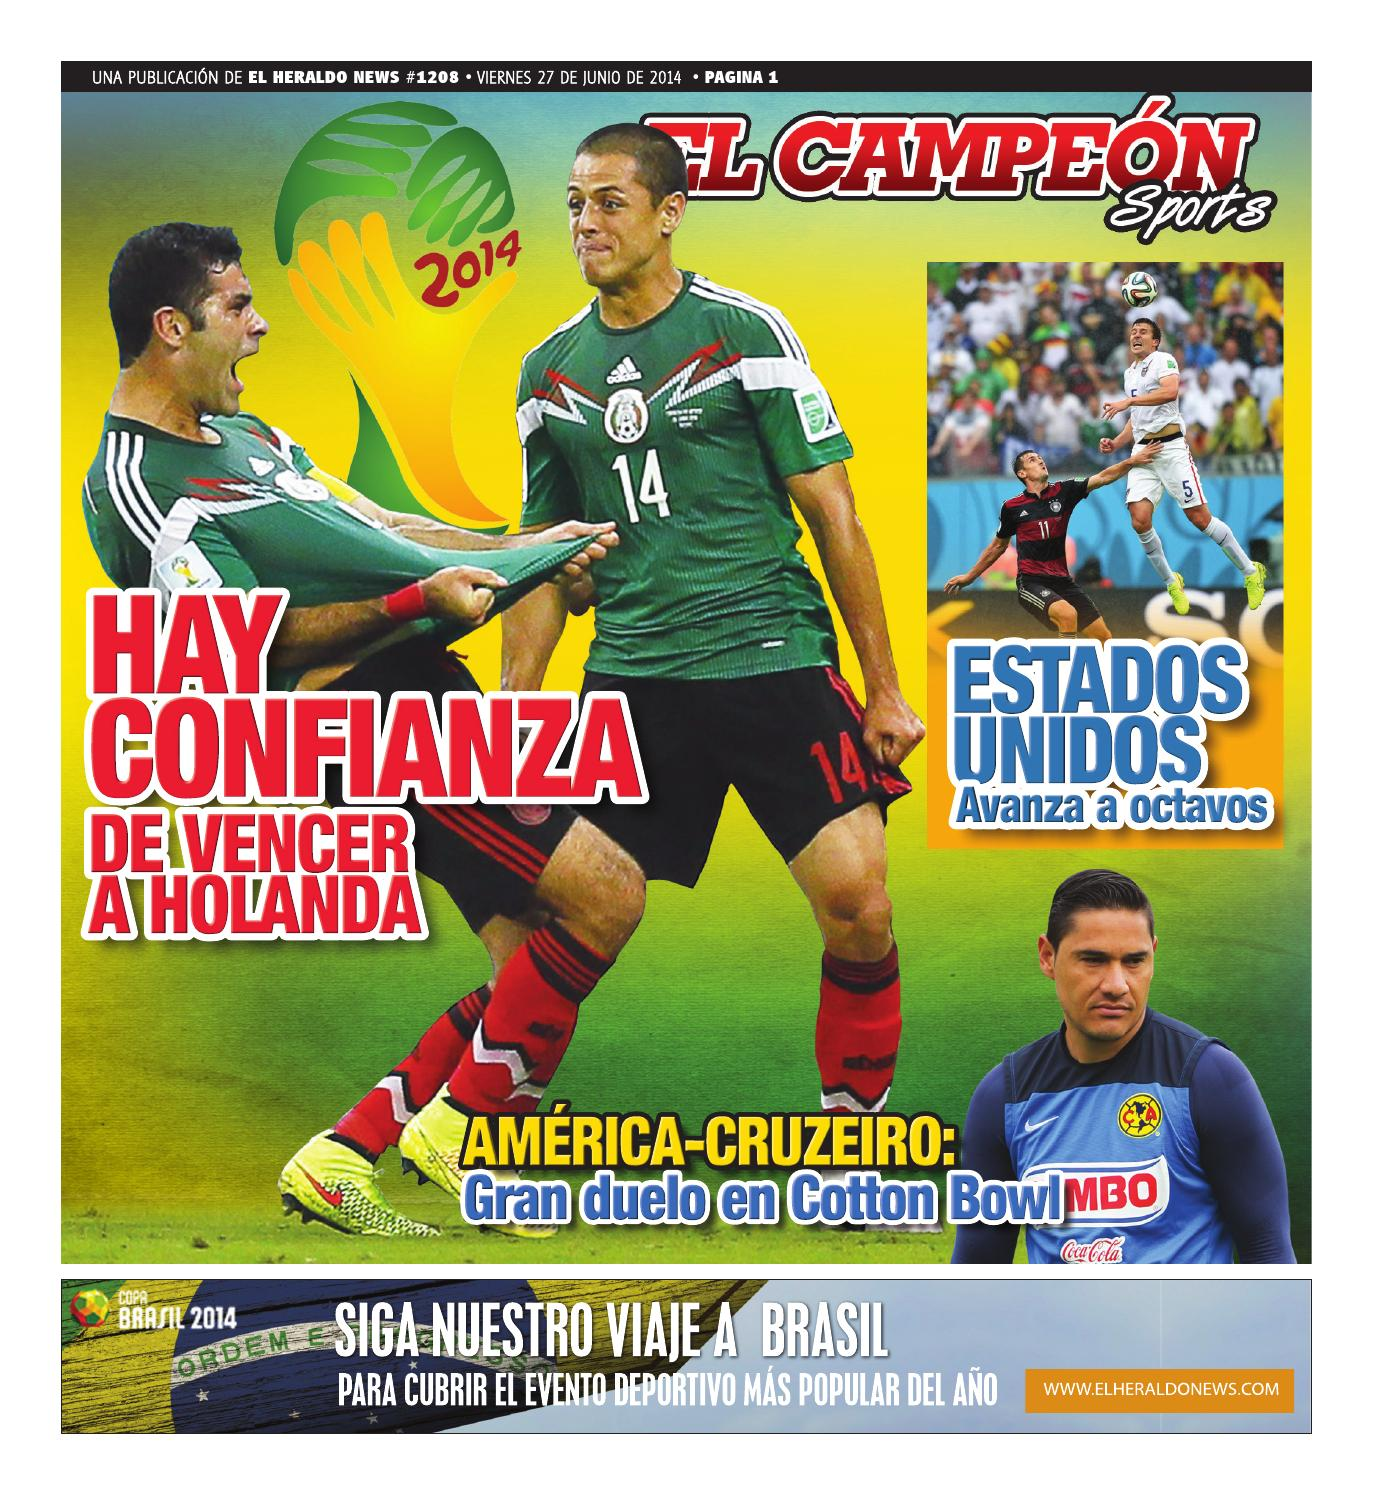 a0320290c9bca Elcampeon jun27 2014 by El Heraldo News - issuu